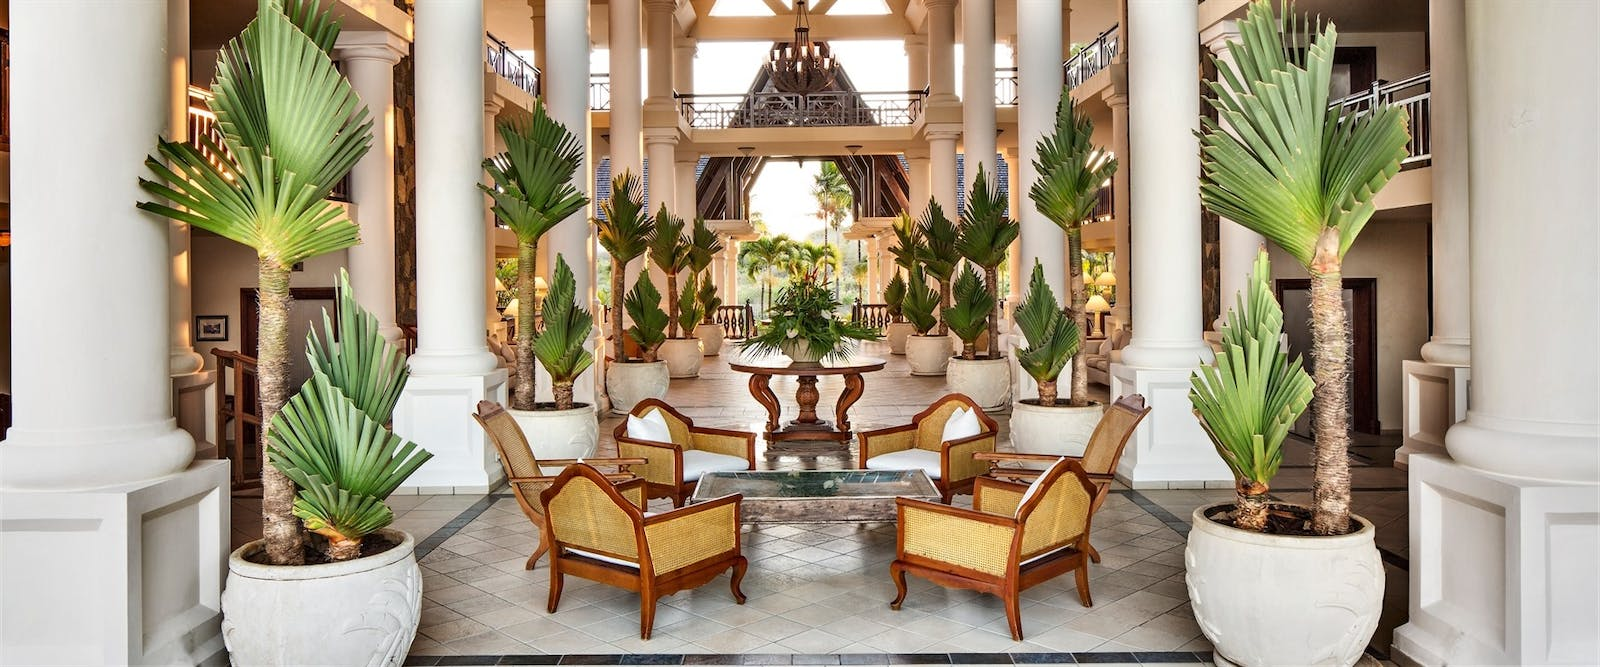 Lobby Interior at The Residence Mauritius, Indian Ocean